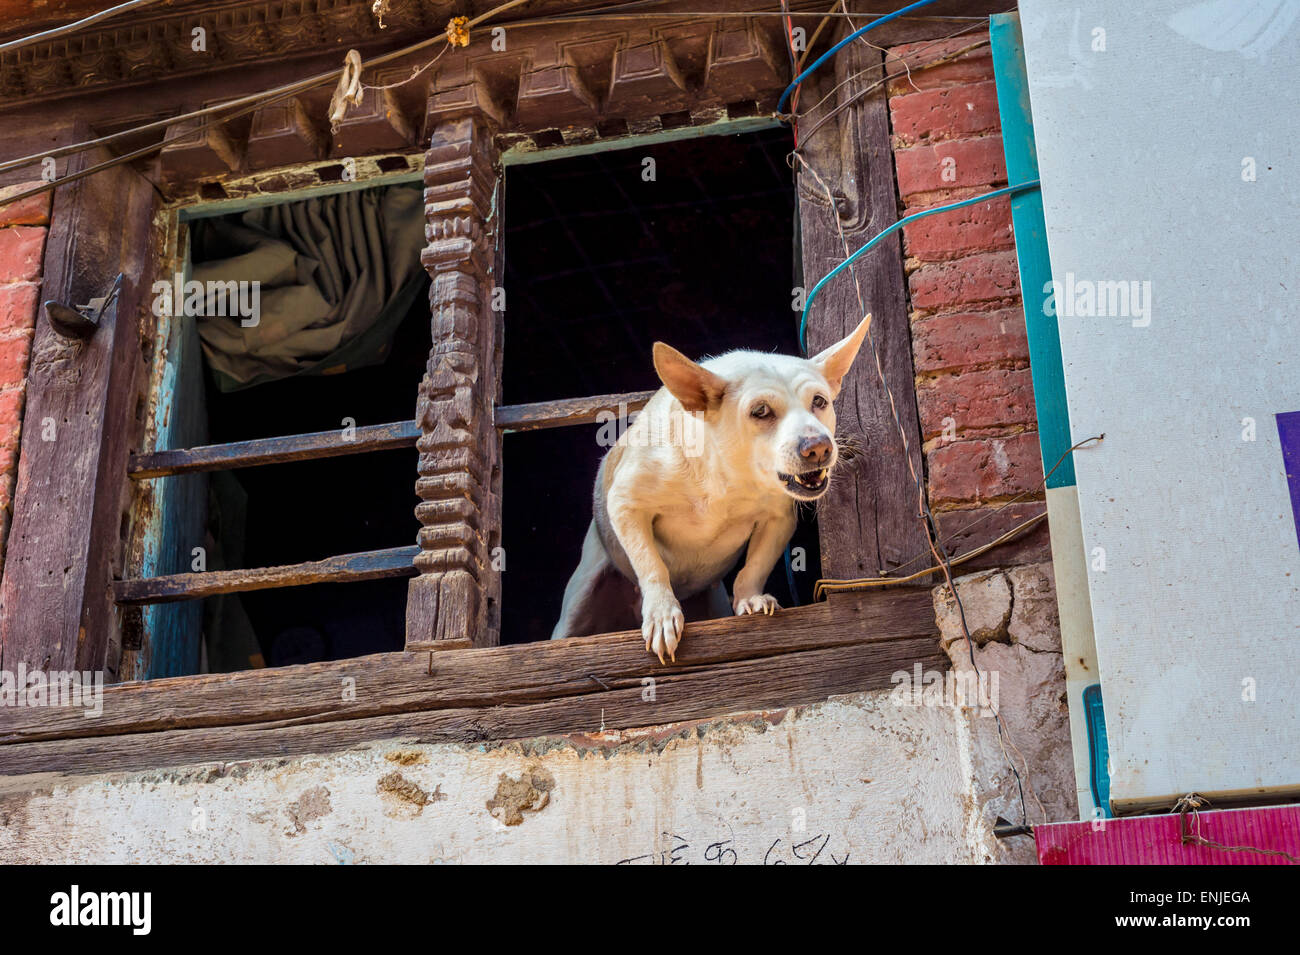 Angry dog barking at the window, in bhaktapur, Nepal - Stock Image